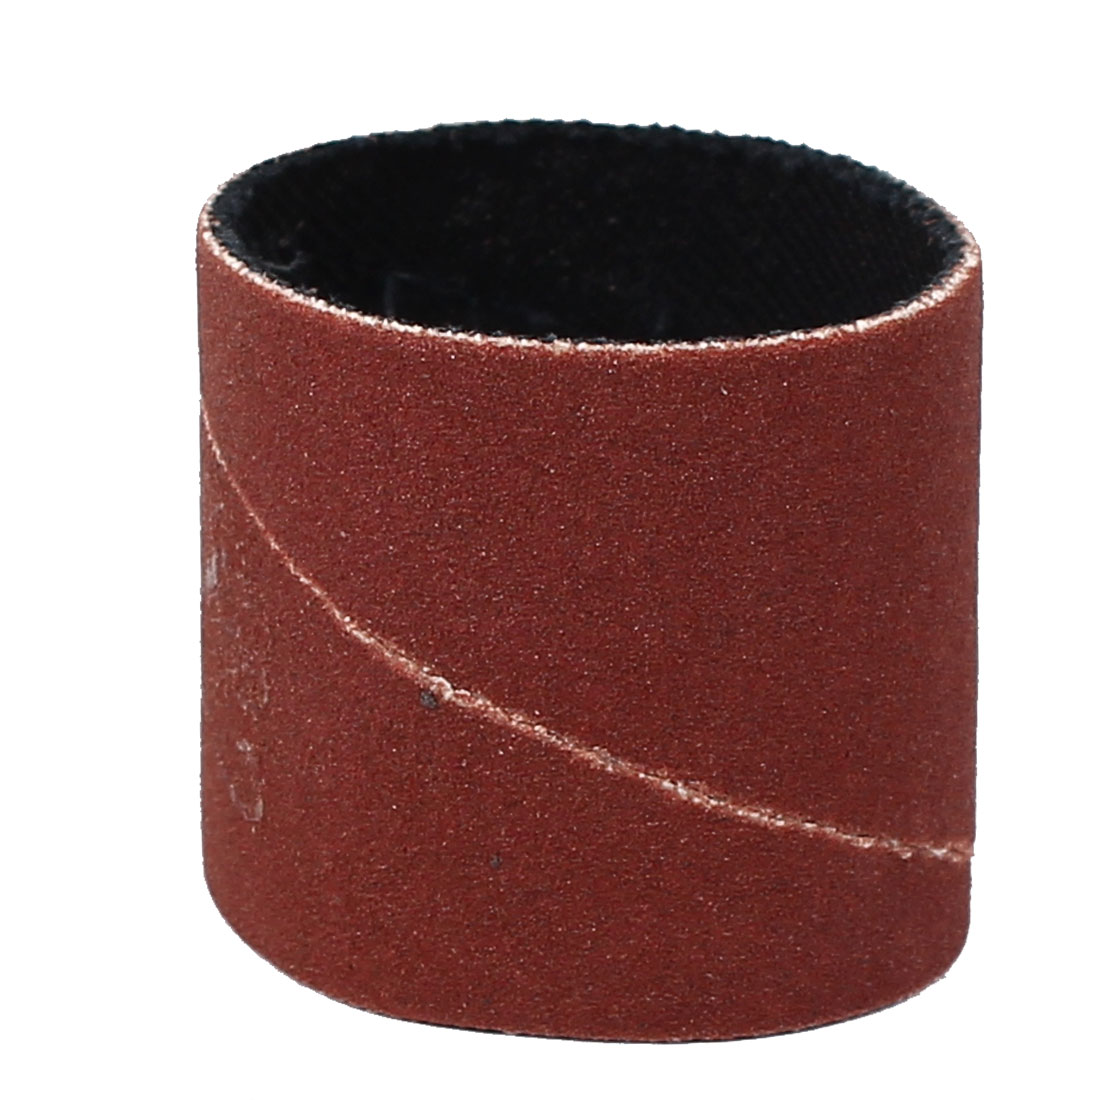 25.4mm Diameter 320 Grit Sanding Drums Abrasive Spiral Band Sleeves Rolls